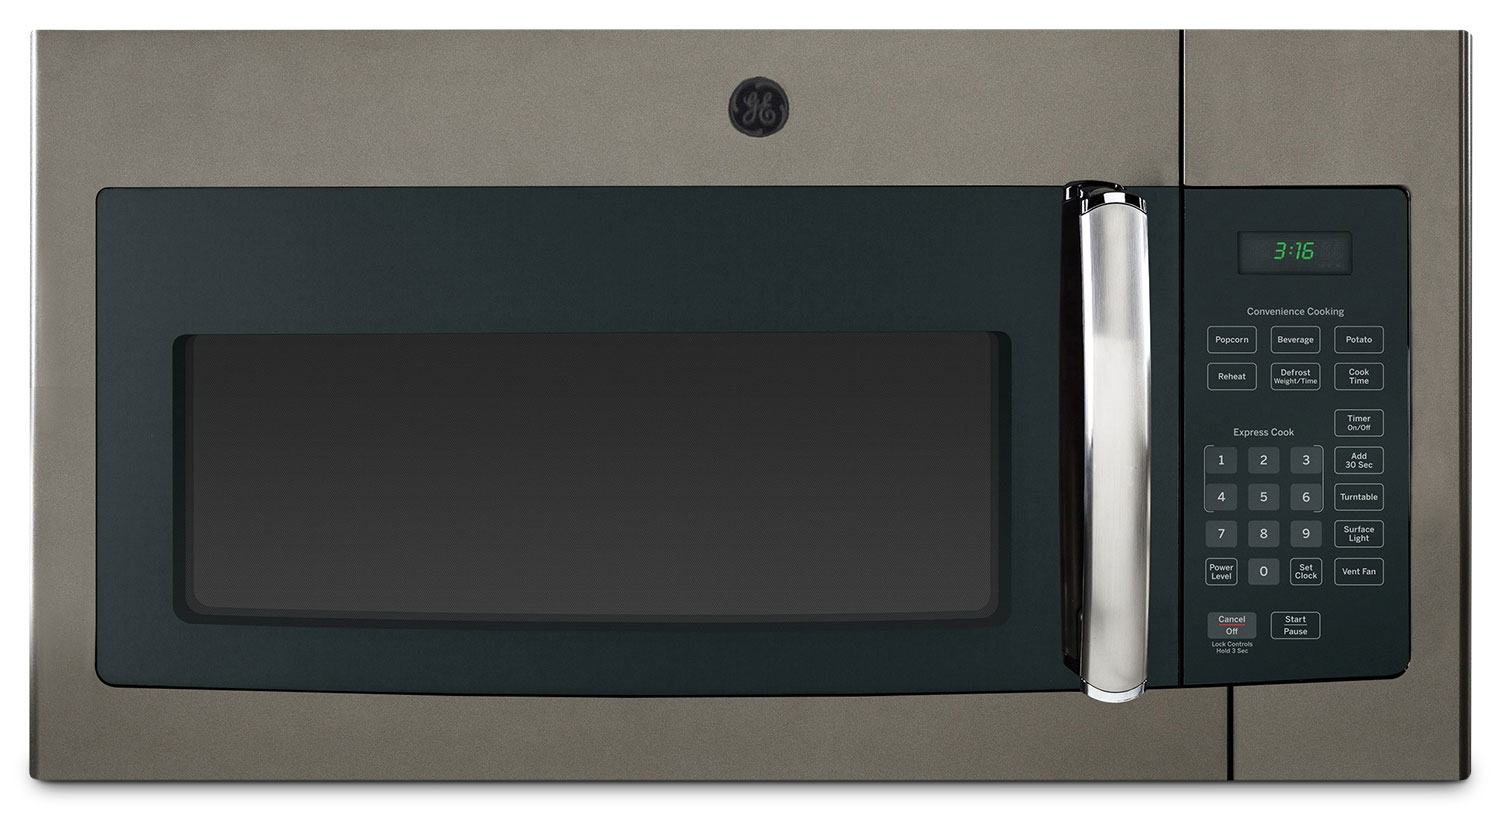 Cooking Products - GE 1.6 Cu. Ft. Over-the-Range Microwave – JVM1635SLJC